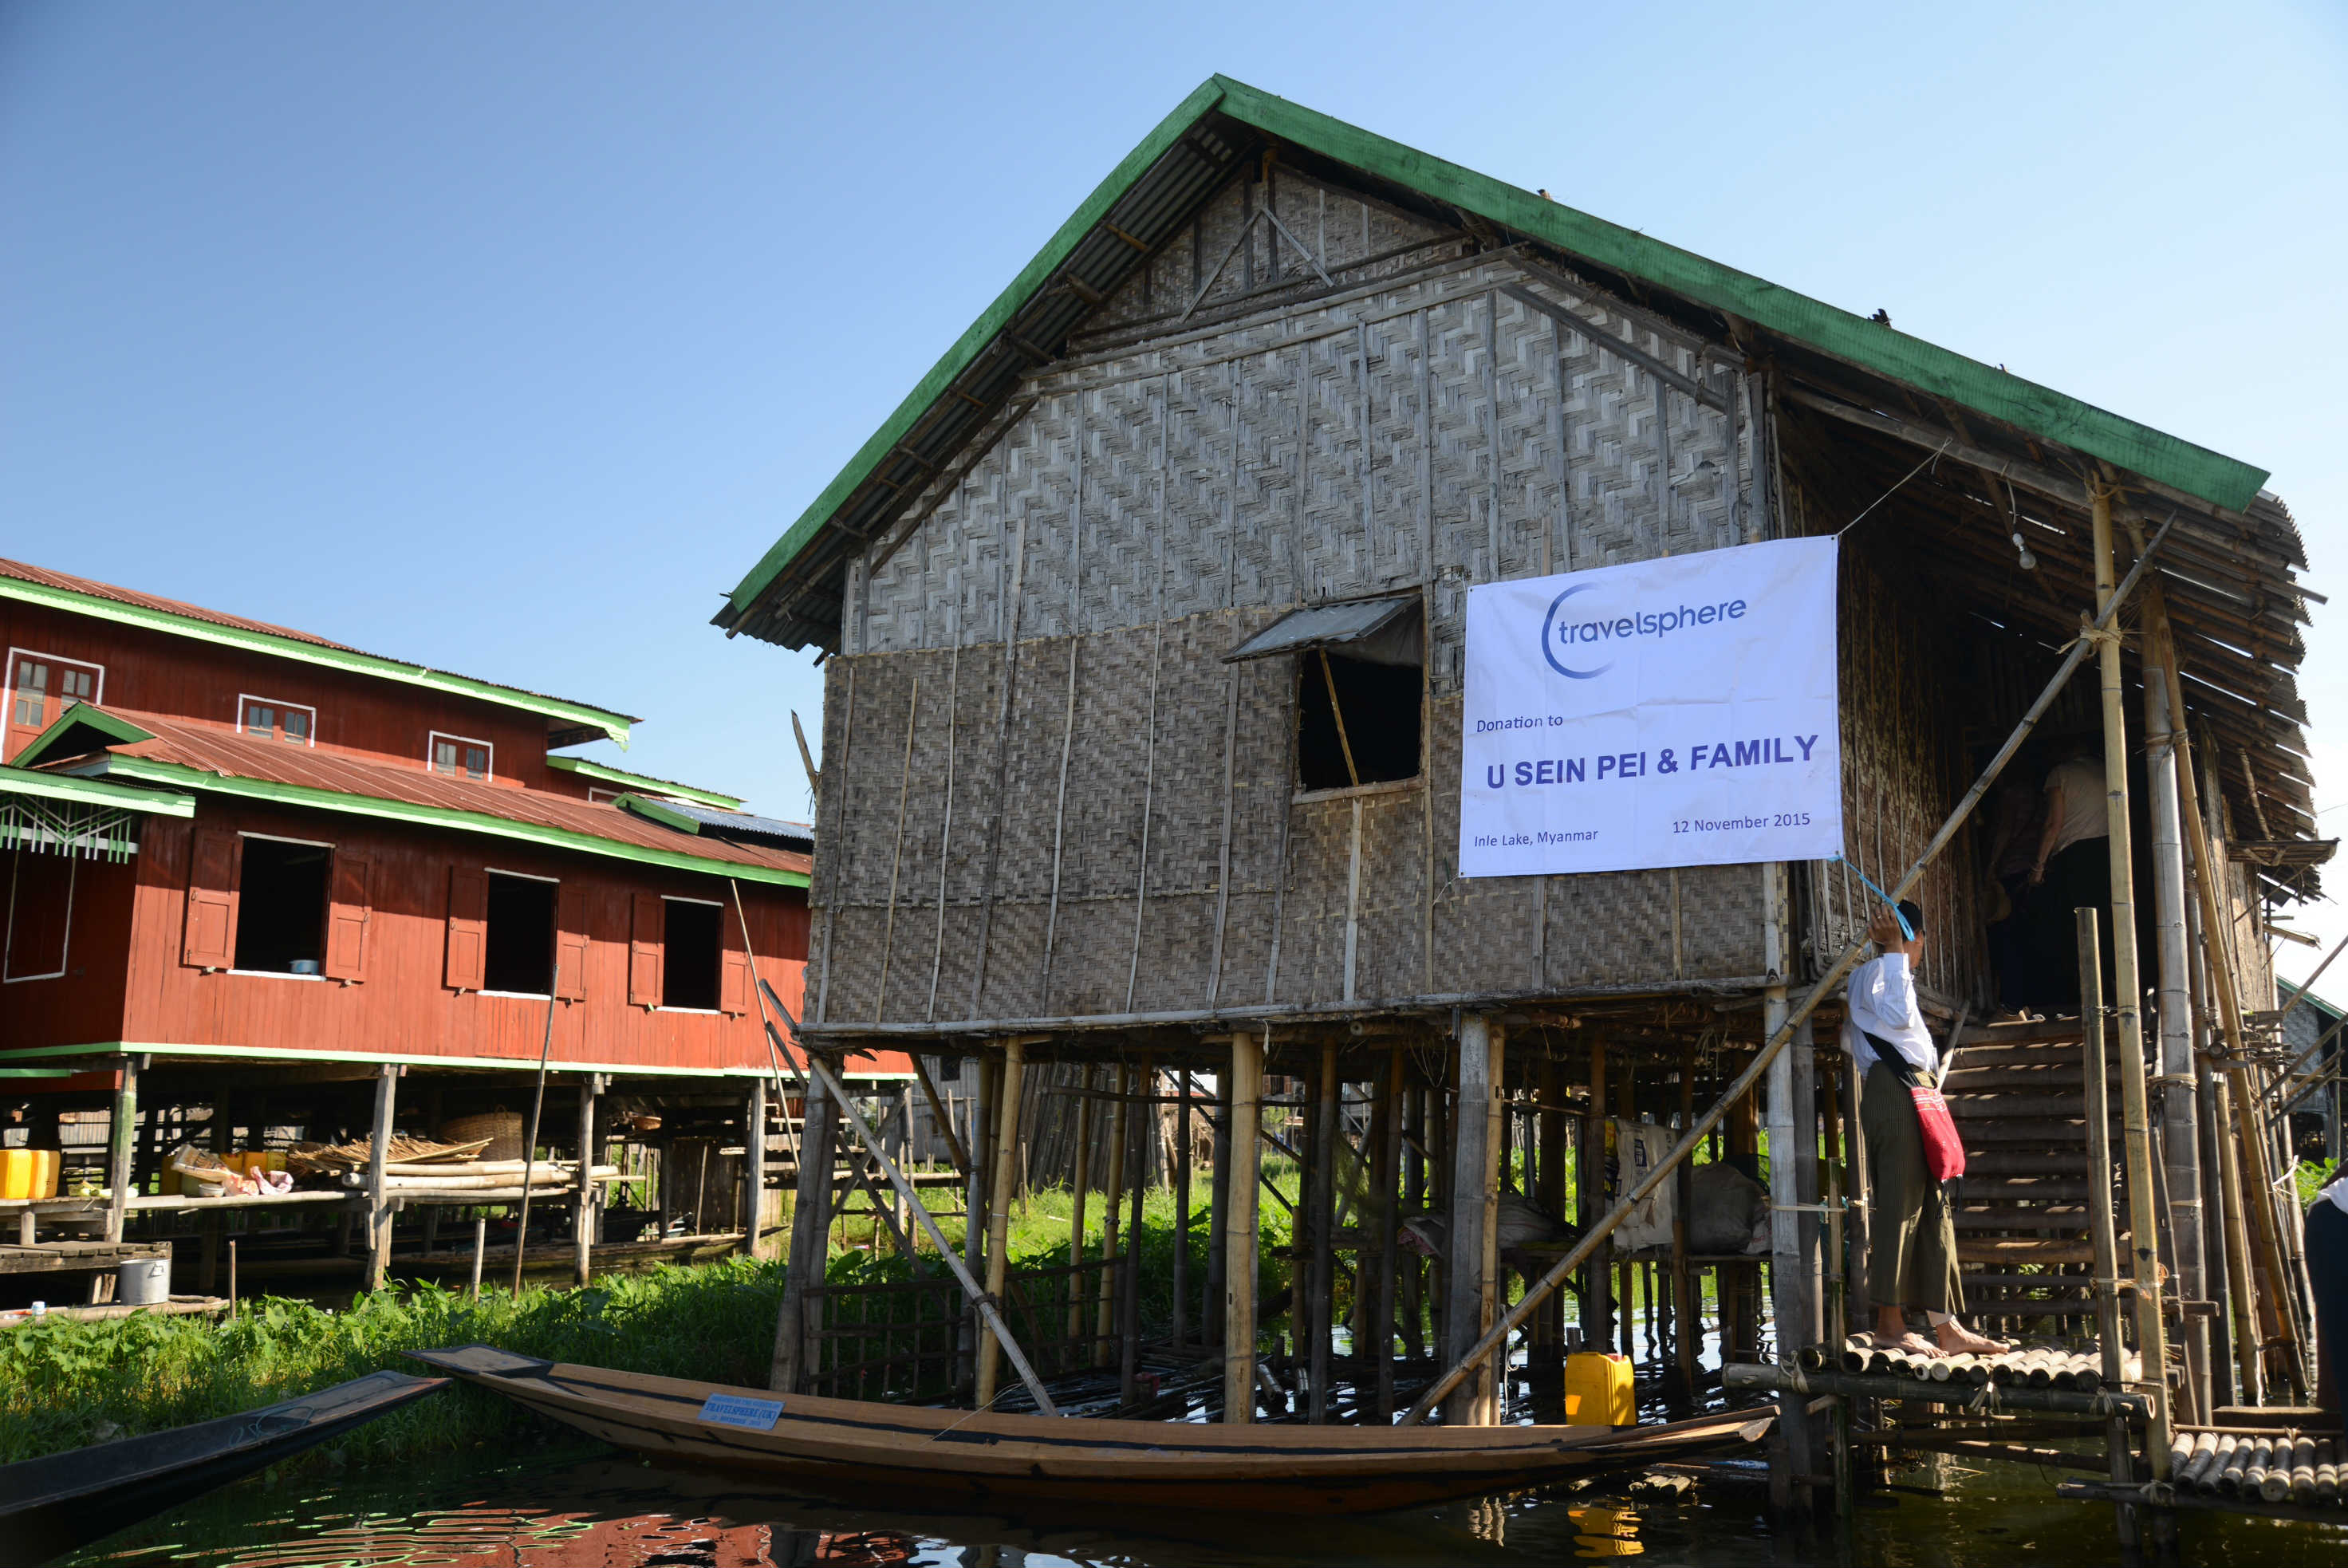 LBURMG 01 Travelsphere Cares Donate a fishing boat house.JPG